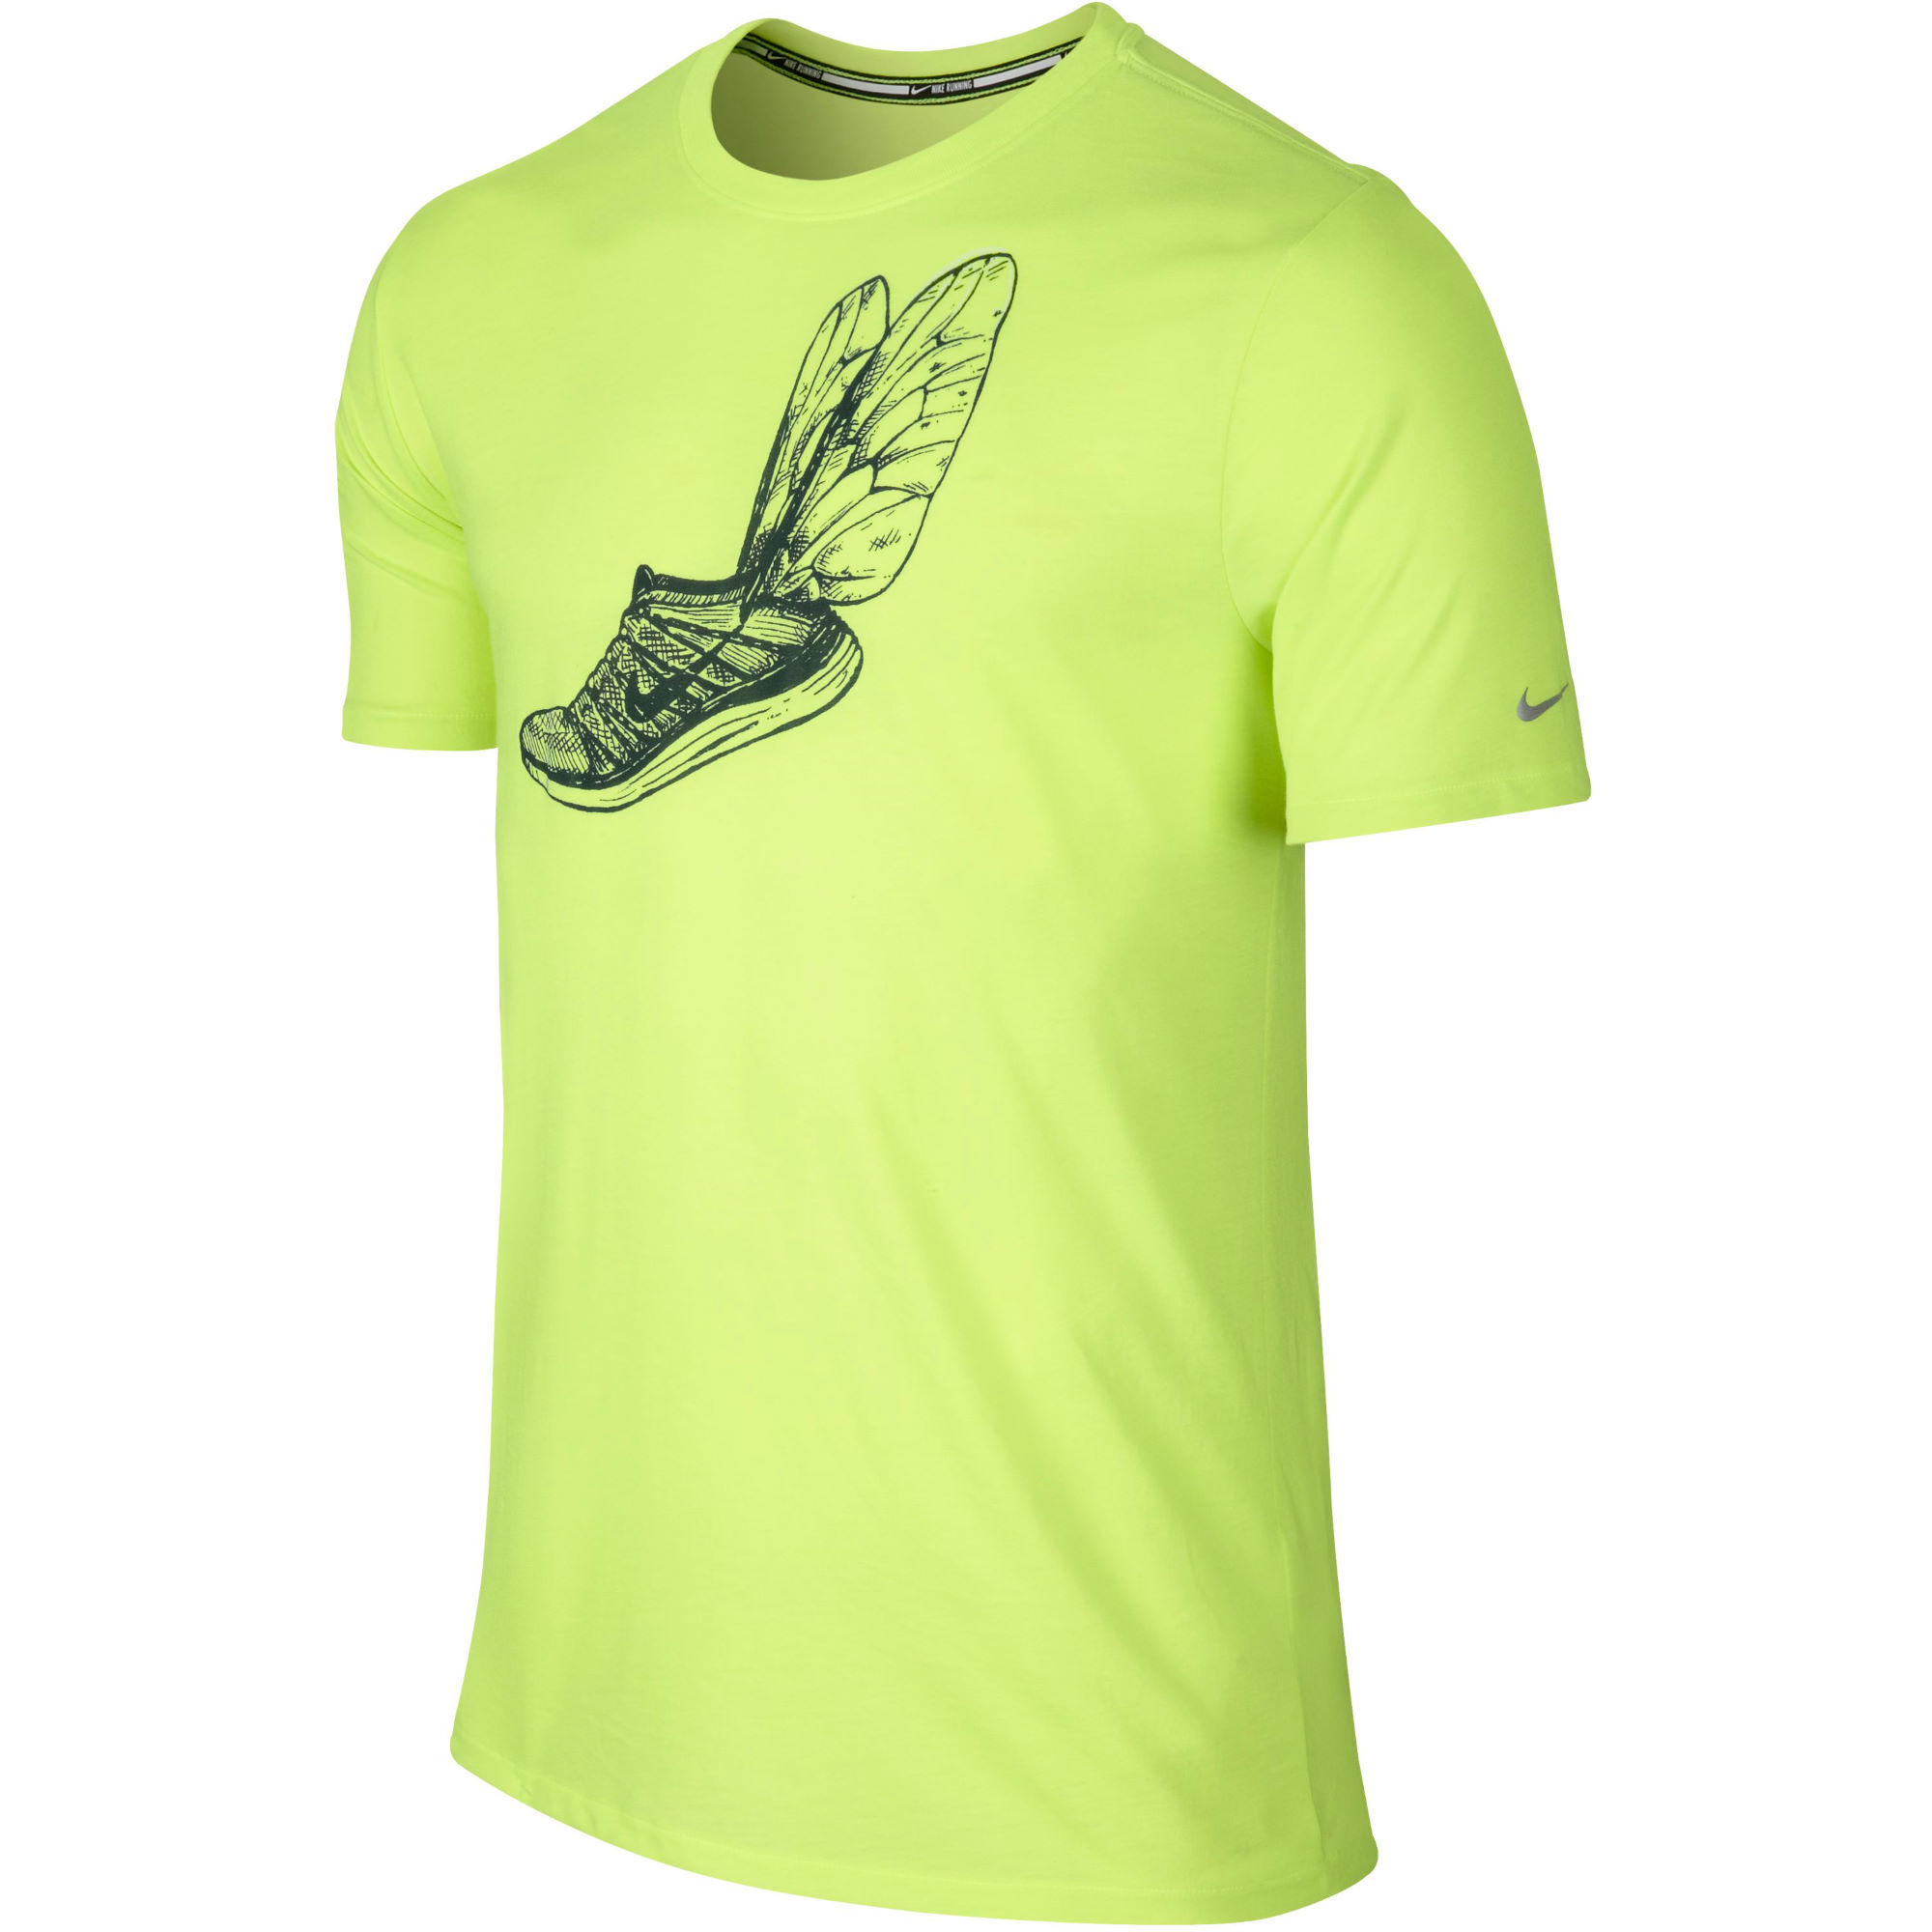 Wiggle nike run printed flyknit tee sp15 running for Nike flyknit t shirt